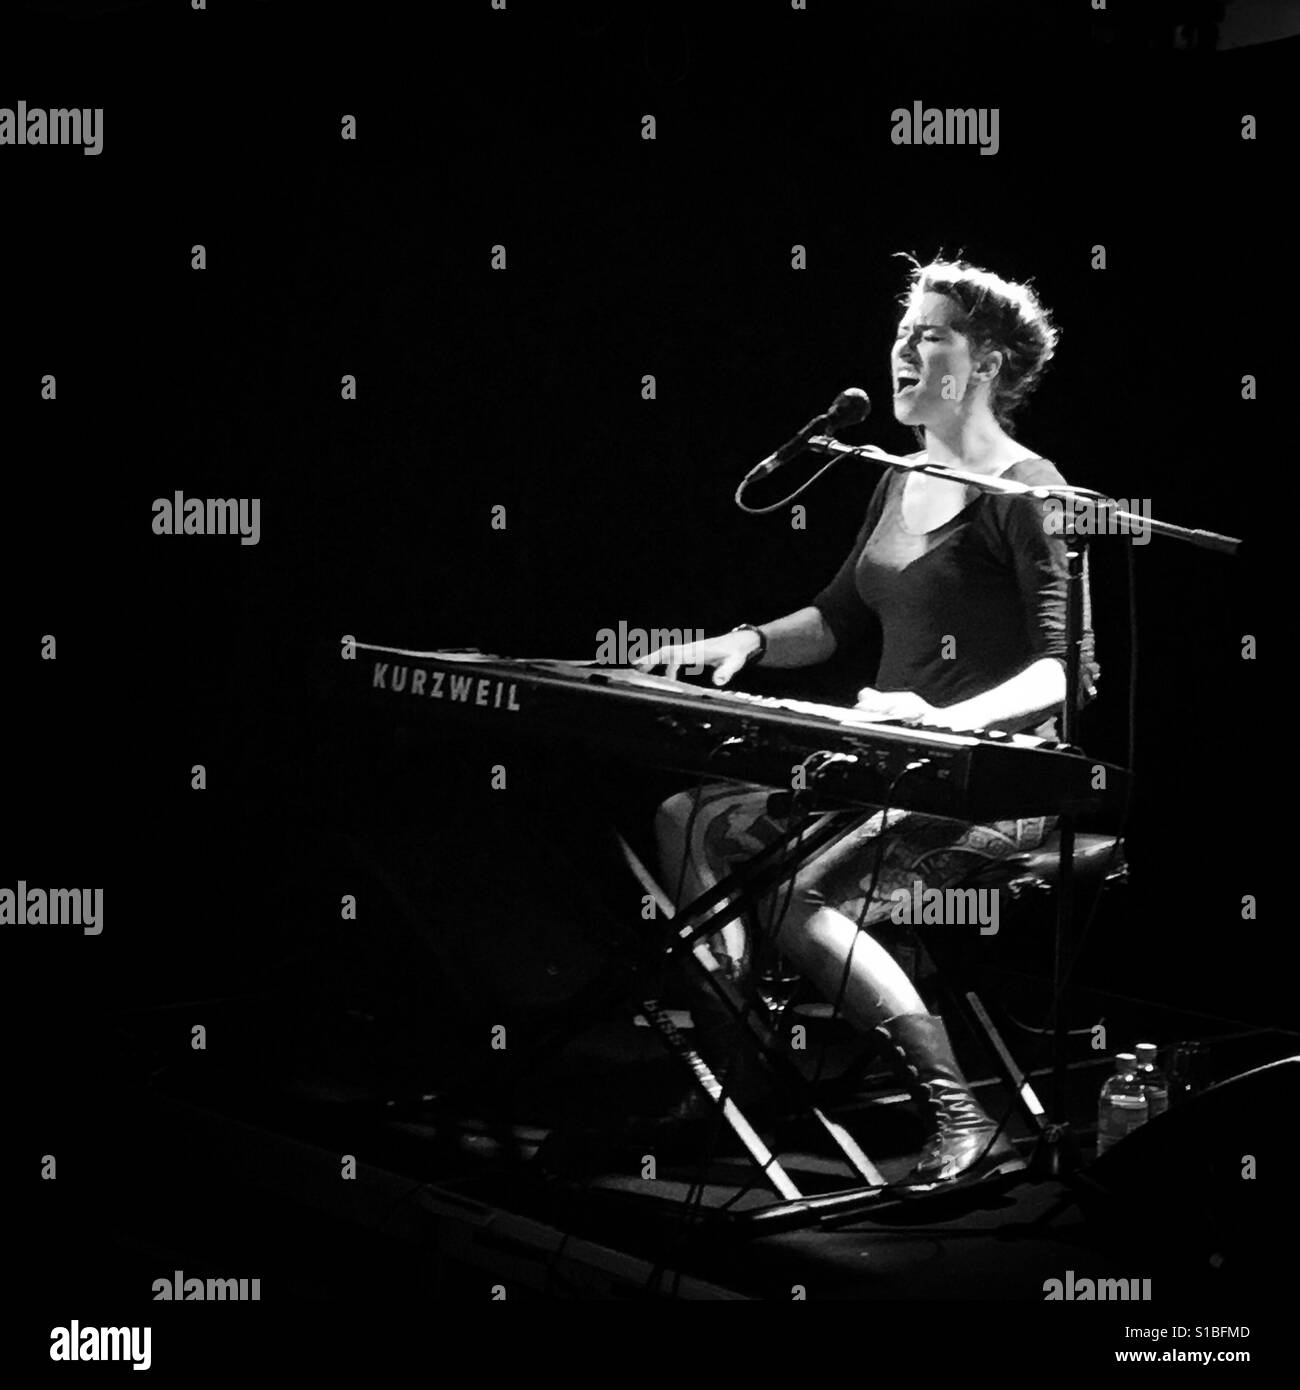 Amanda Palmer performs in Melbourne - Stock Image